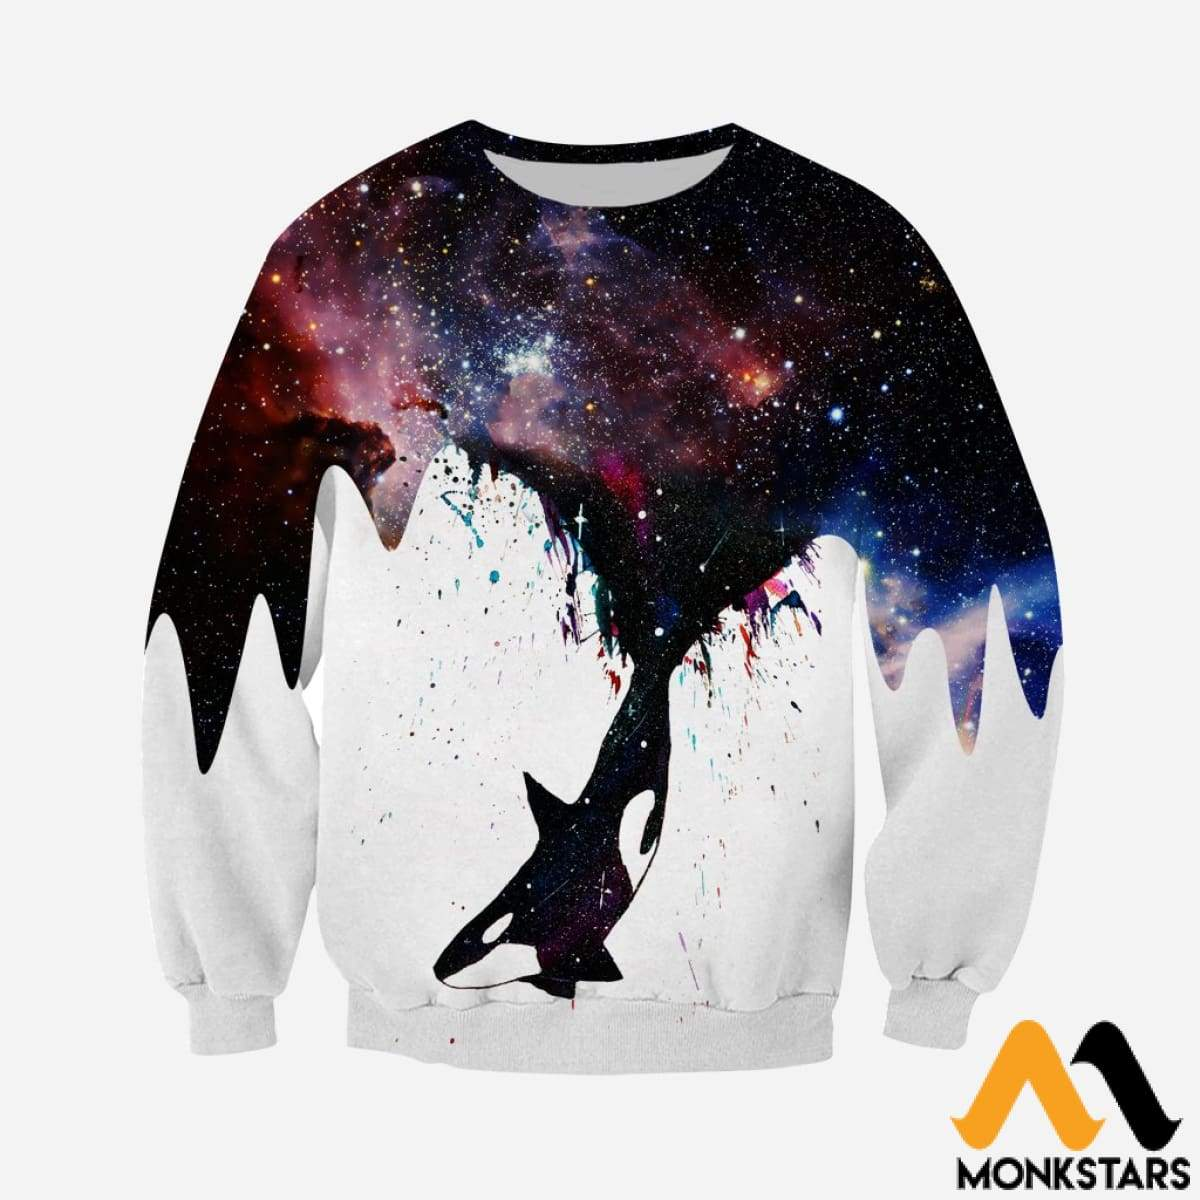 5a1d6d11e5db 3D All Over Printed Whale Killer Galaxy Shirts and Shorts ...